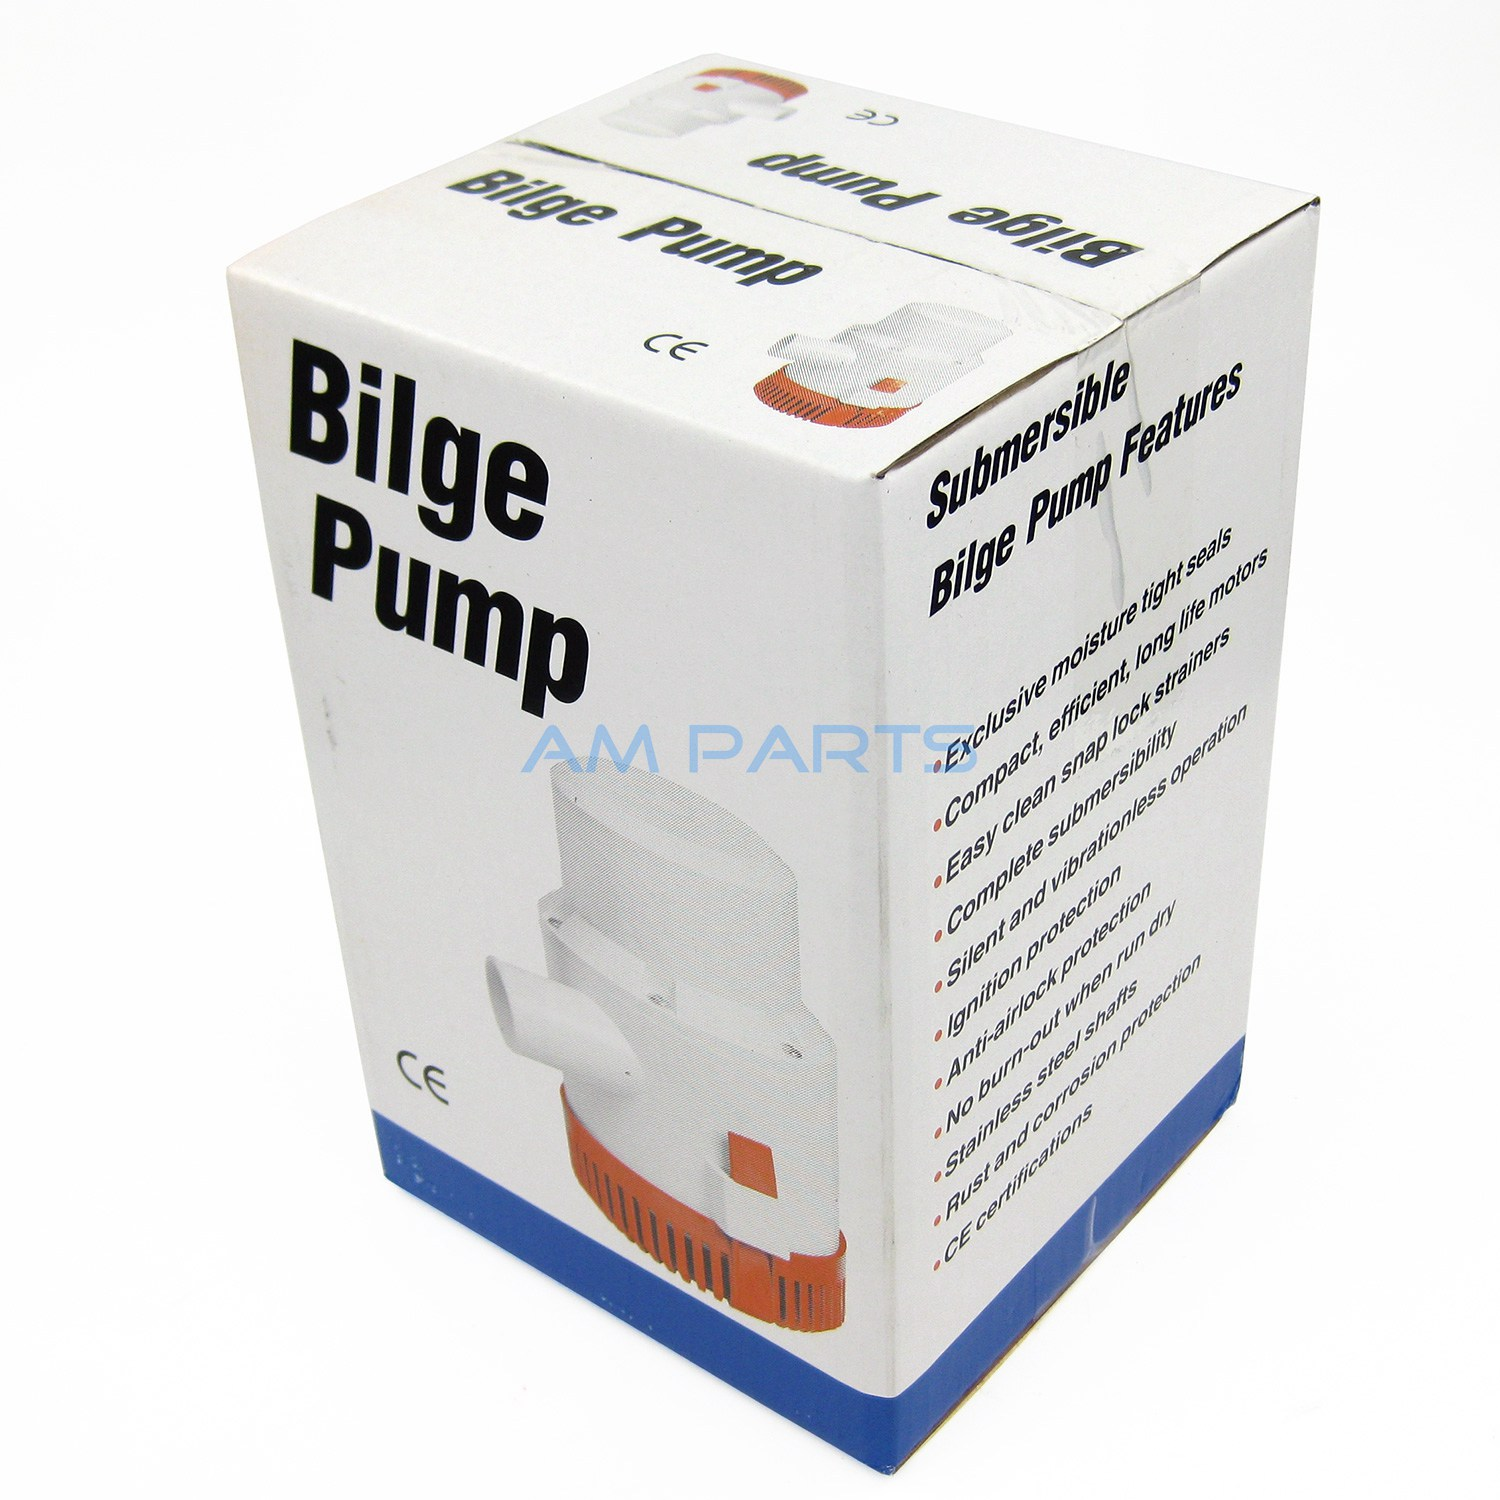 Aliexpress com : Buy 12V 4700GPH Bilge Pump Marine Boat Submersible Water  Pump With Float Switch from Reliable Marine Pump suppliers on A&M PARTS